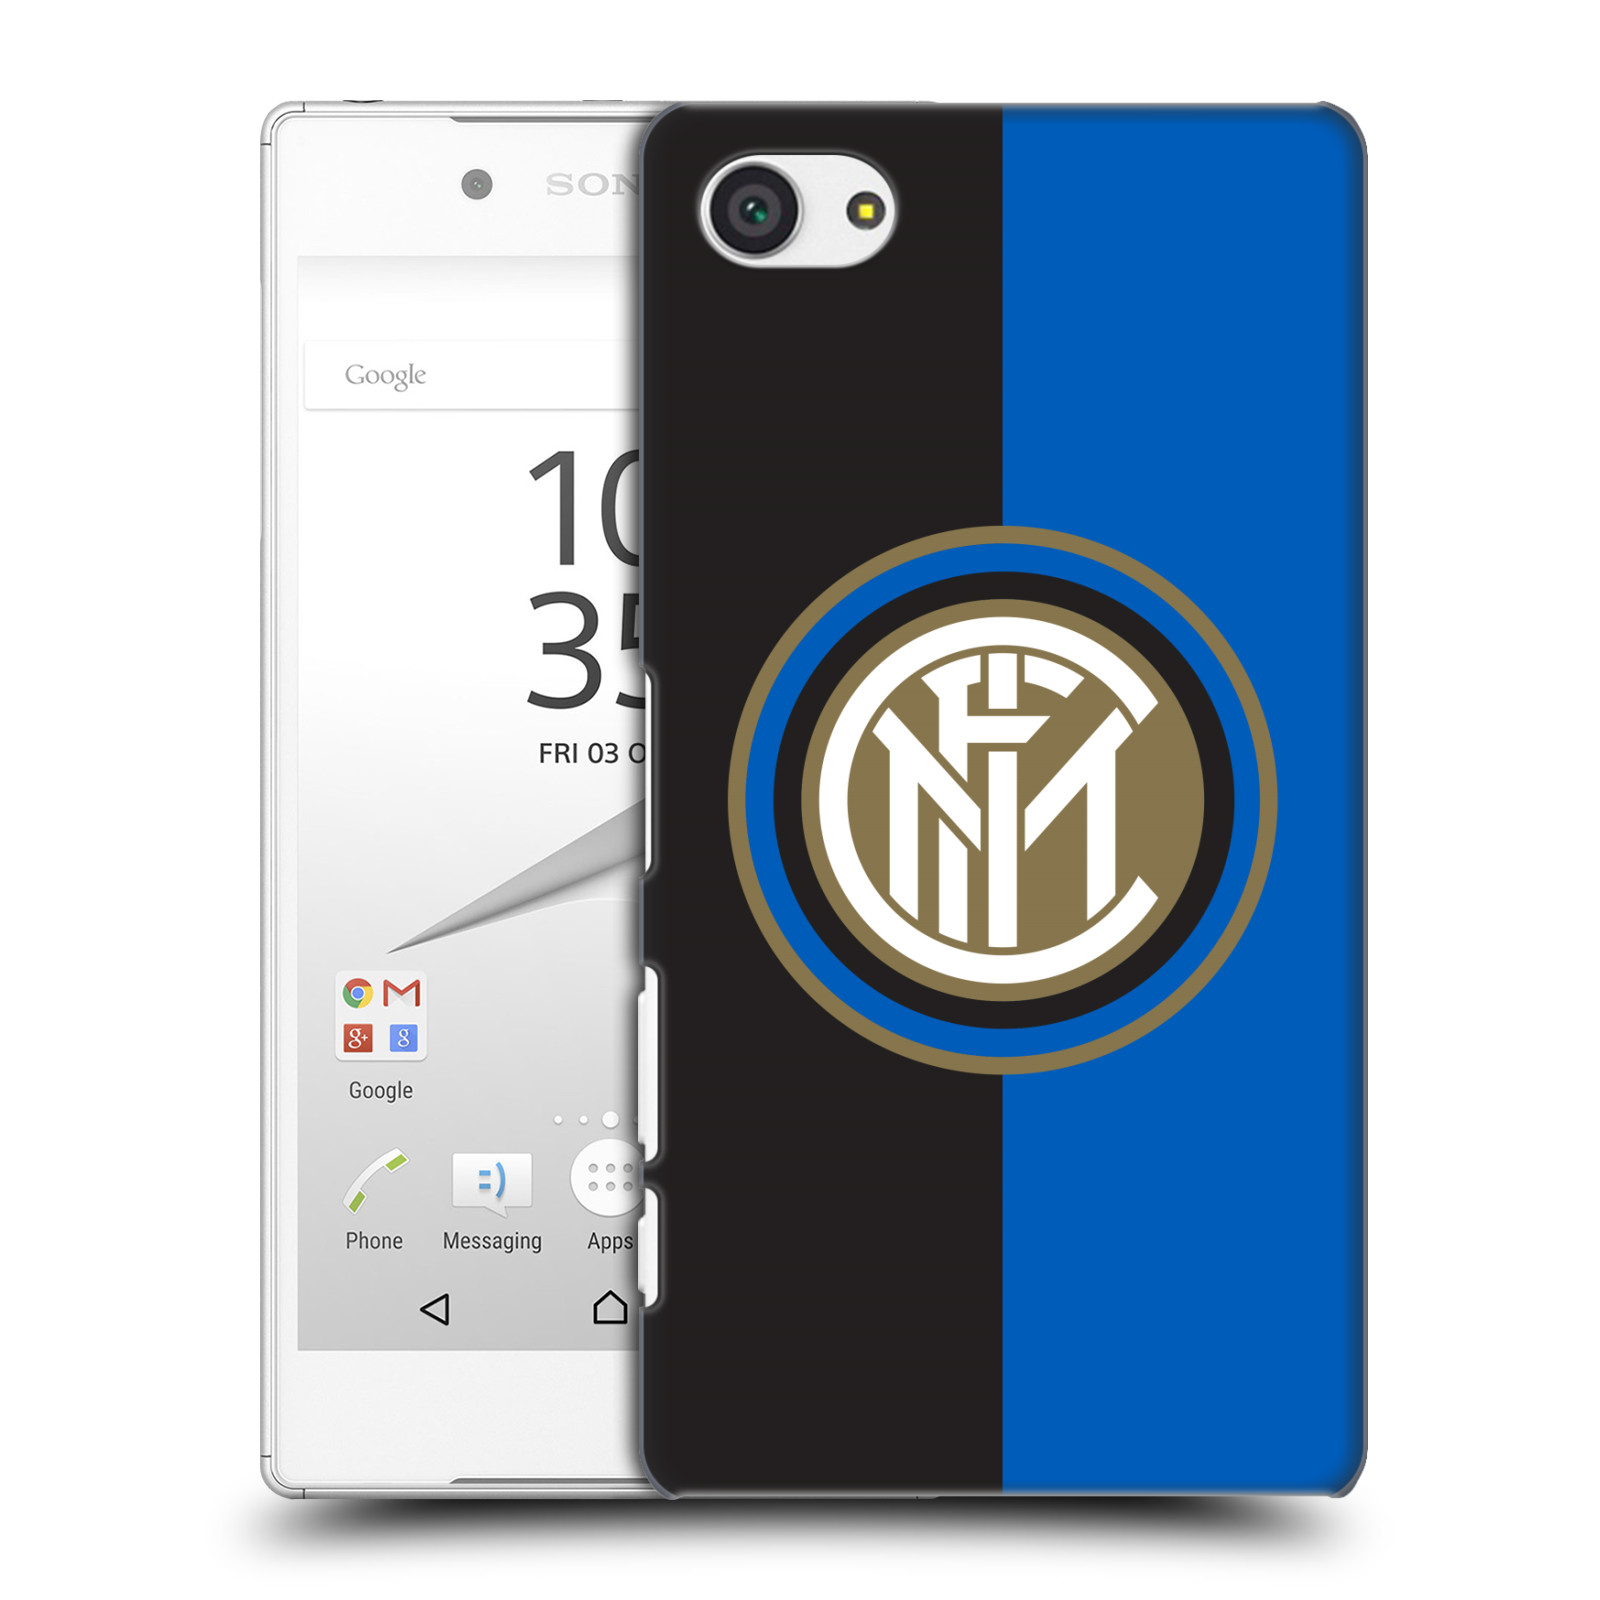 Plastové pouzdro na mobil Sony Xperia Z5 Compact - Head Case - Inter Milan - Black and blue